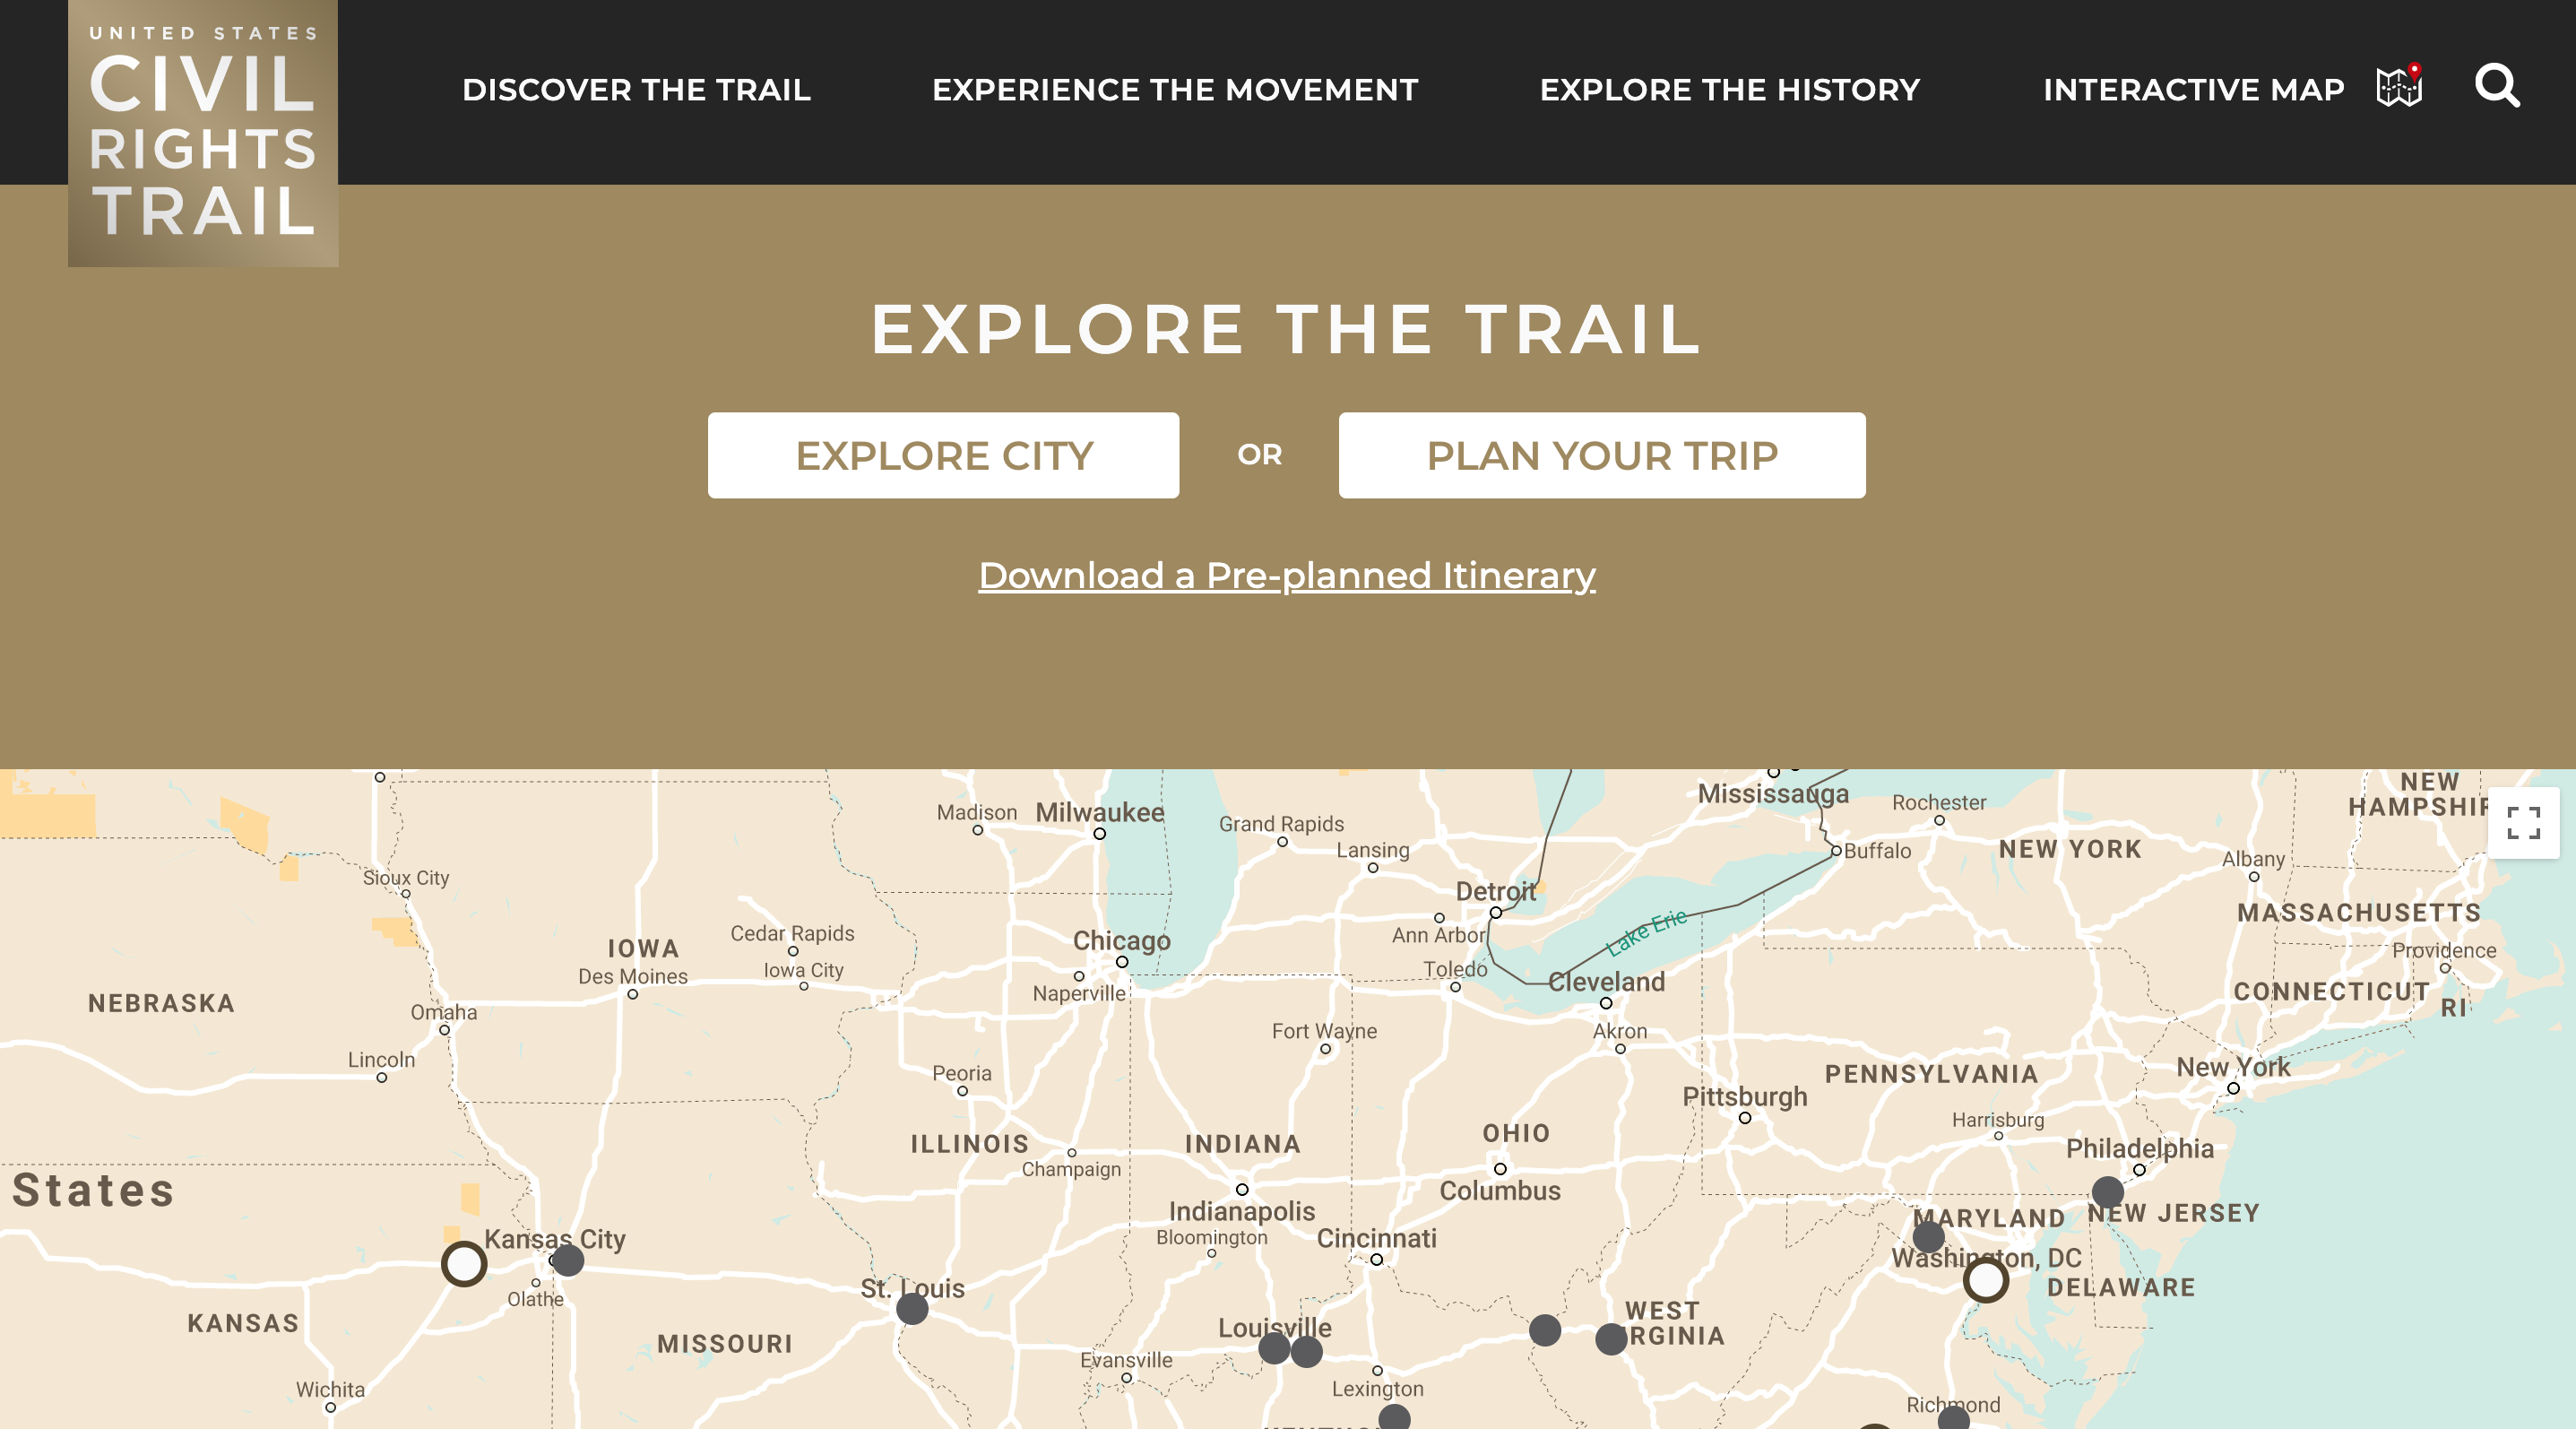 Civil Rights Trail - Interactive Map